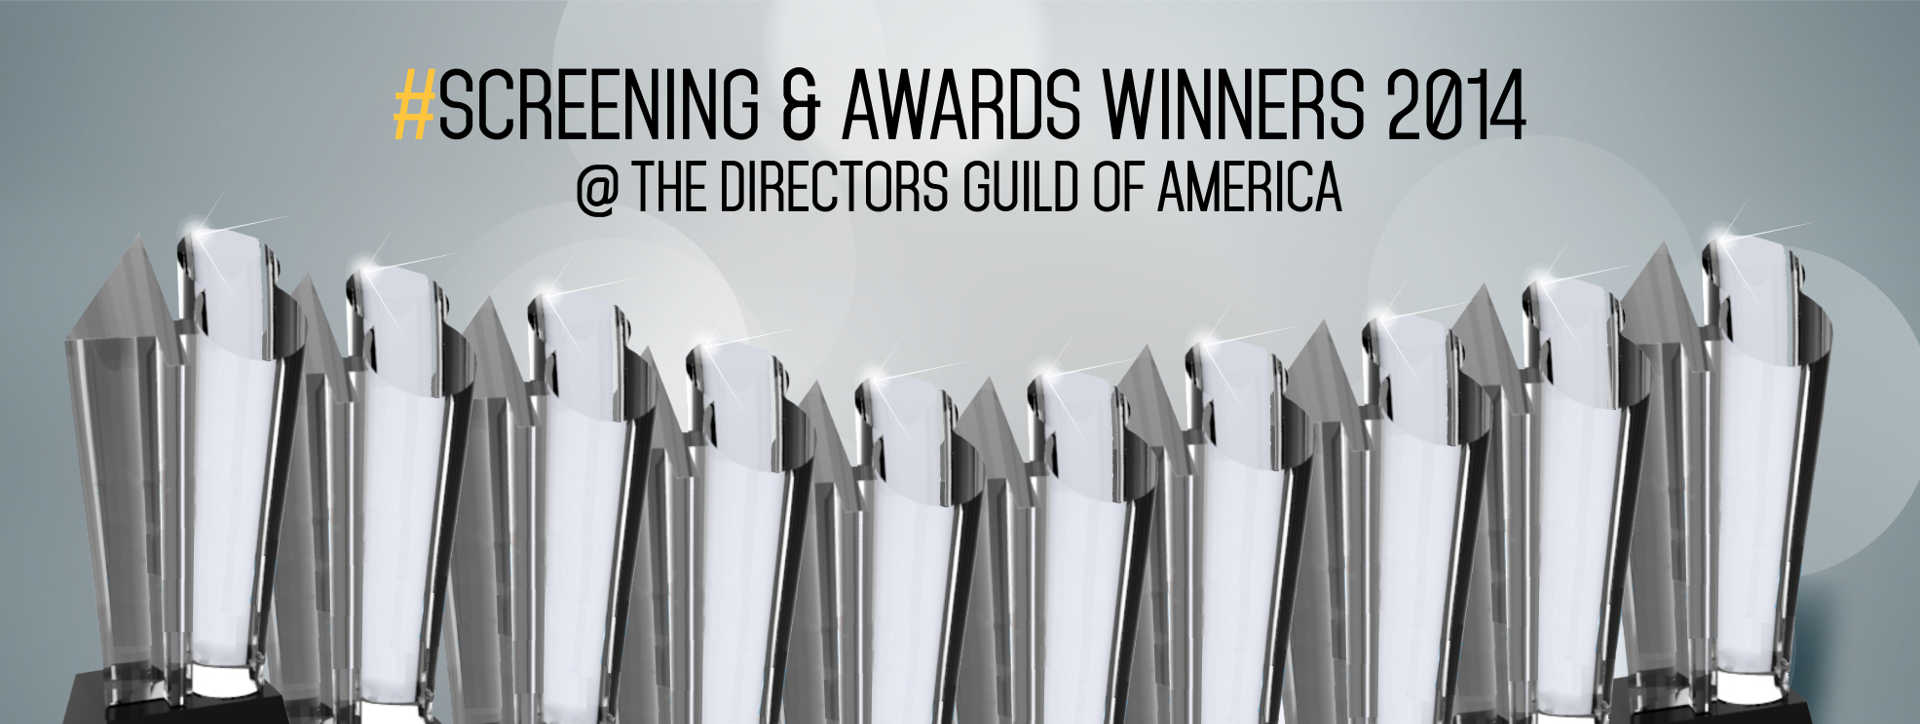 SCREENING & AWARDS - WINNERS 2014 at THE DIRECTORS GUILD OF AMERICA